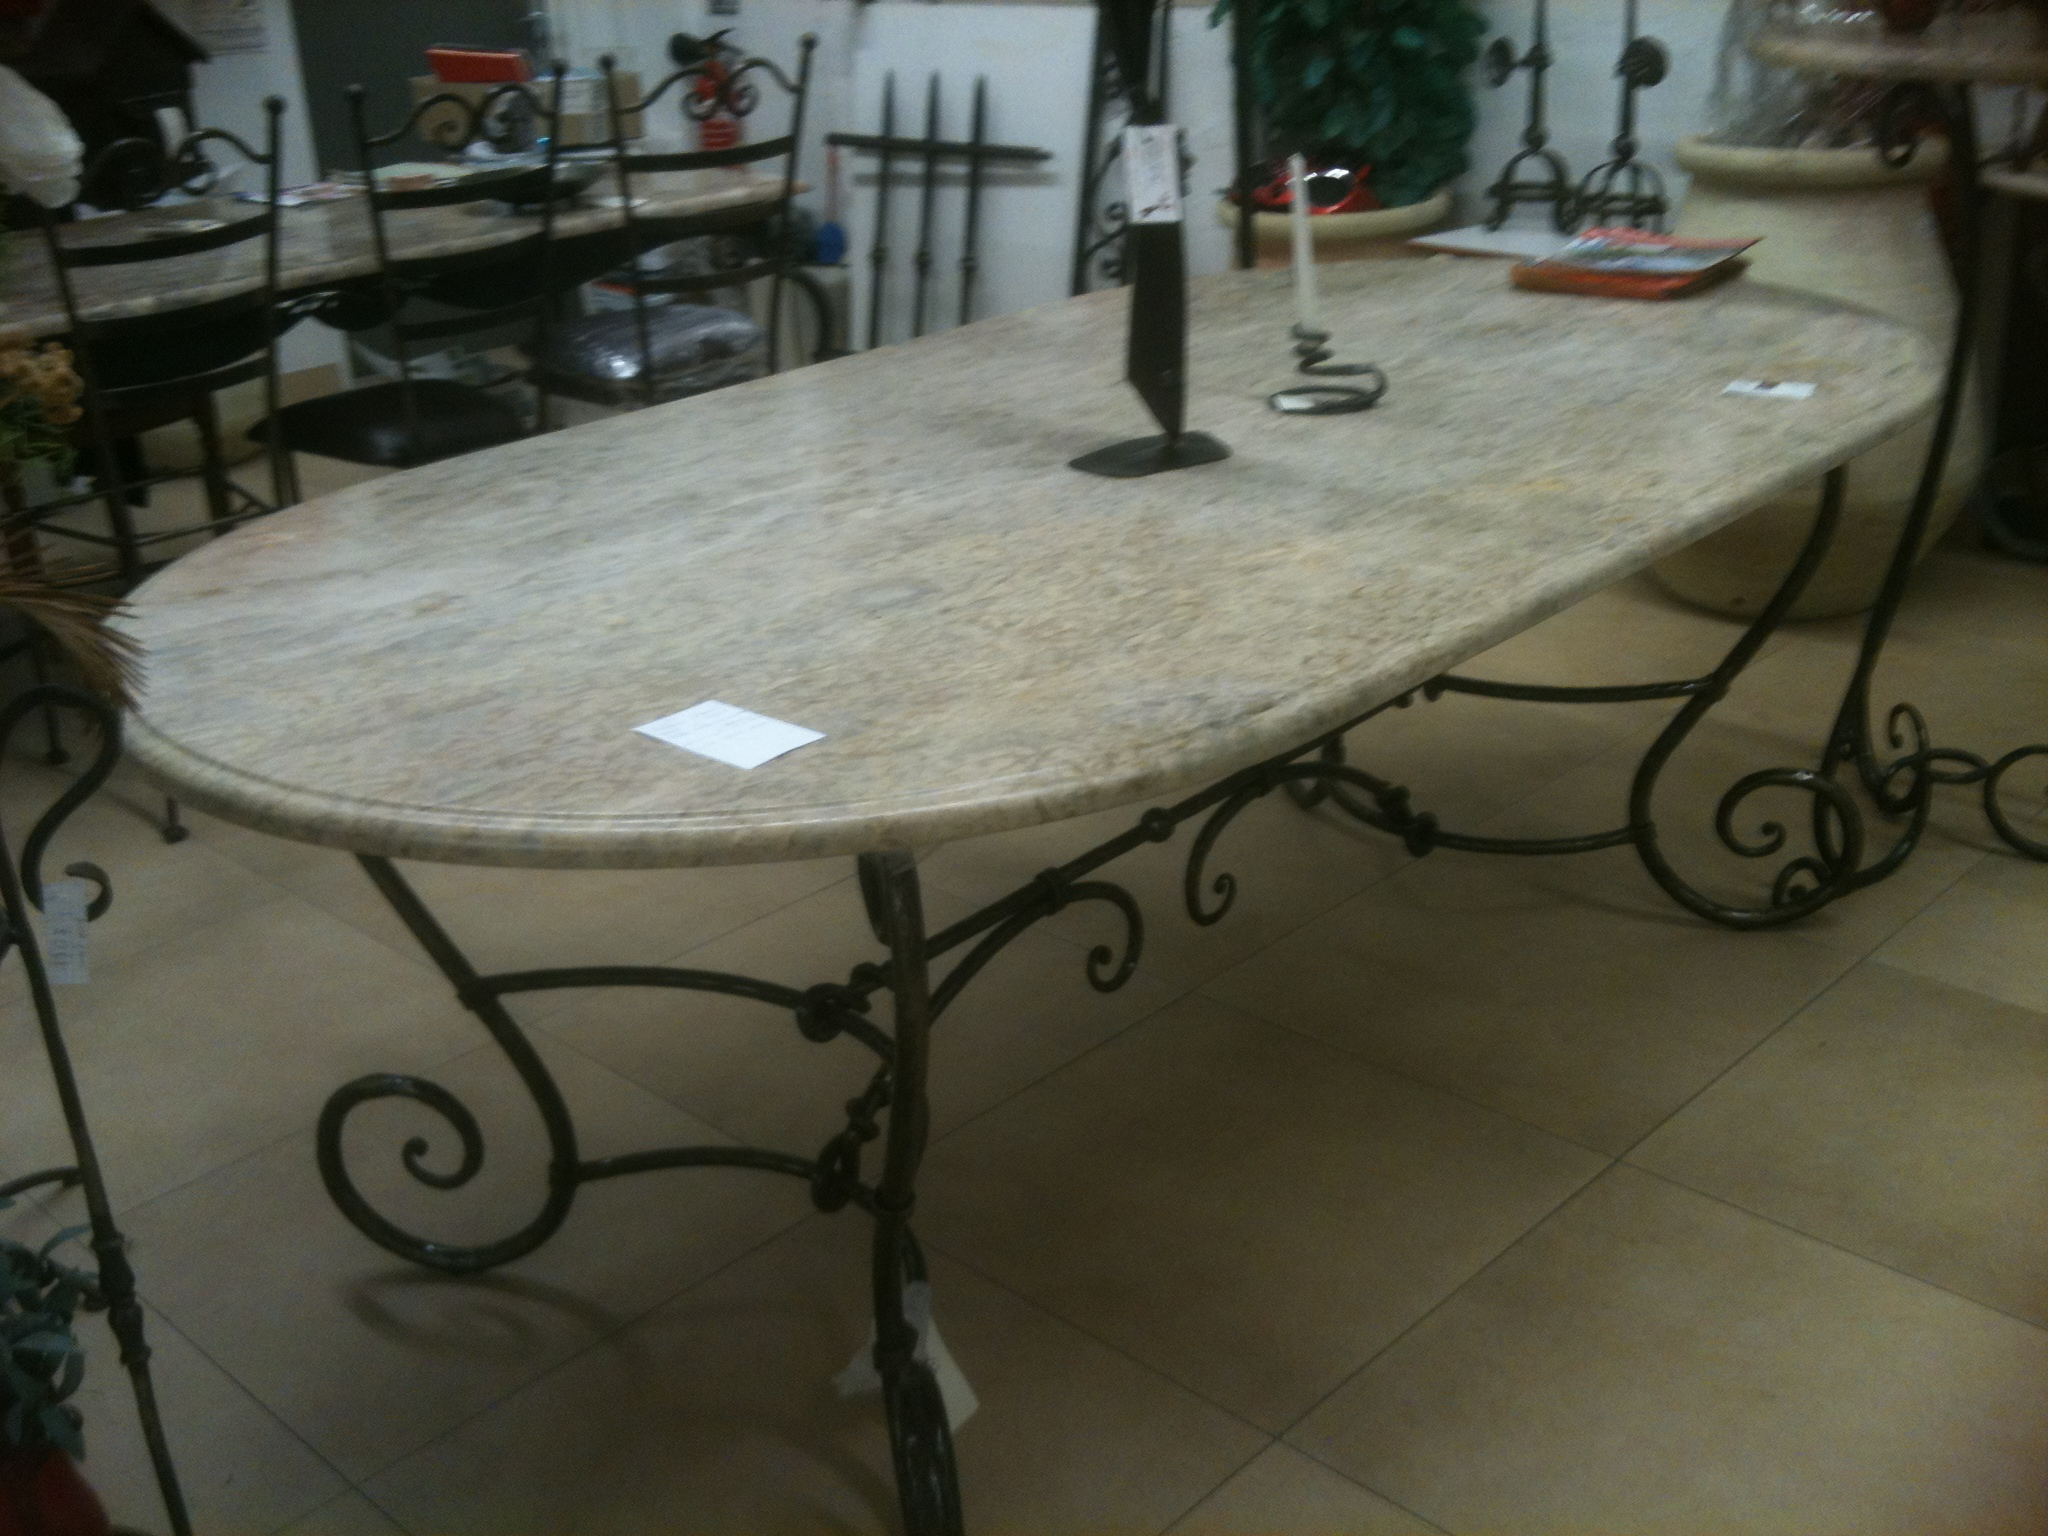 Table ovale pi tement haut 0 73 m plateau long 2 20 m x for Plateau table ovale